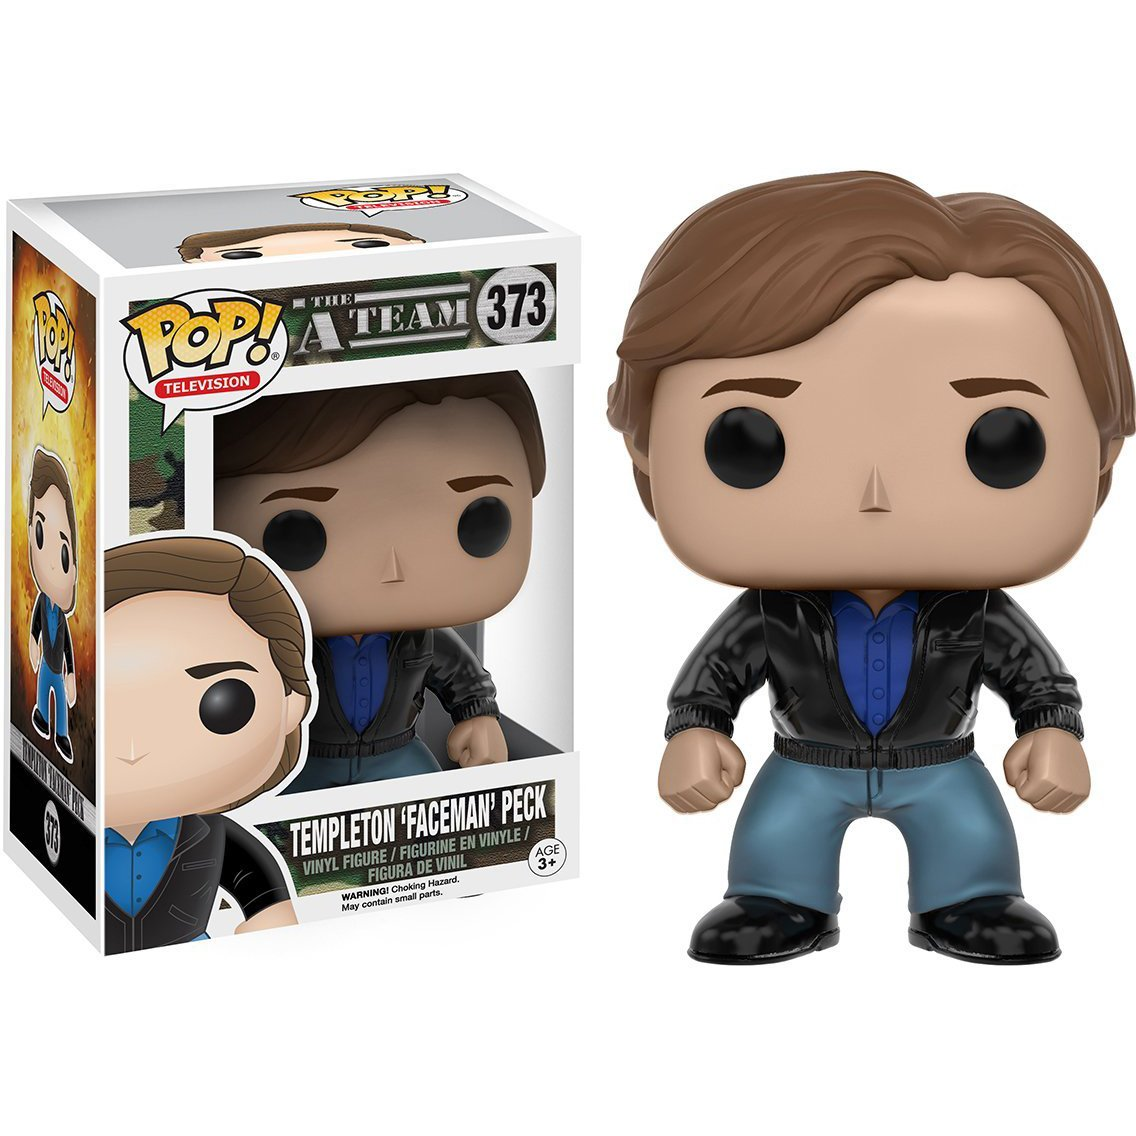 x The A-Team Vinyl Figure BCC9485209 Templeton Faceman Peck: Funko POP 064273 1 FREE American TV Themed Trading Card Bundle